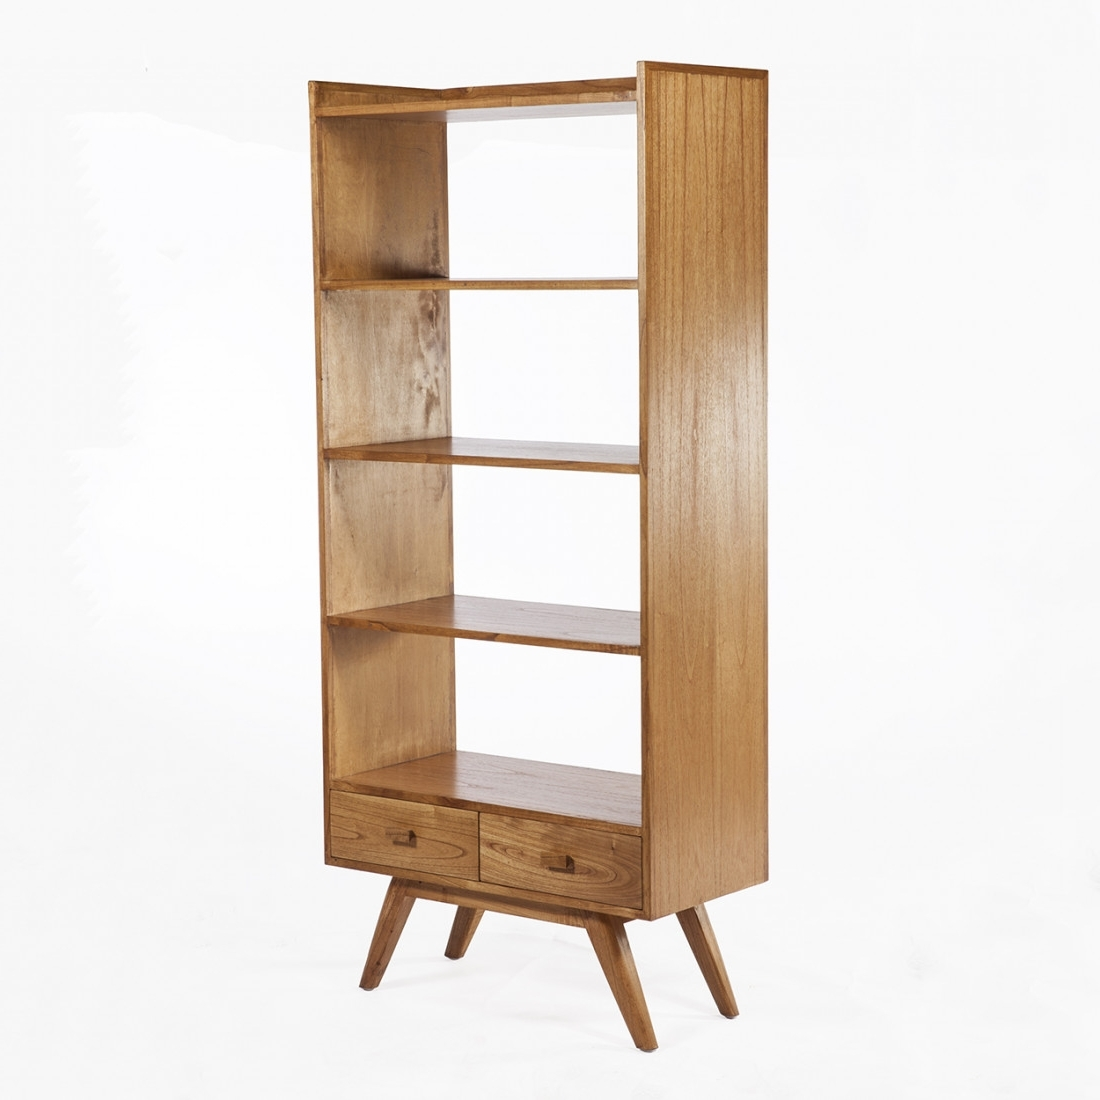 Furniture: Mid Century Modern Tall 4 Tier Shelving Bookcase With 2 With Most Up To Date Midcentury Bookcases (View 5 of 15)